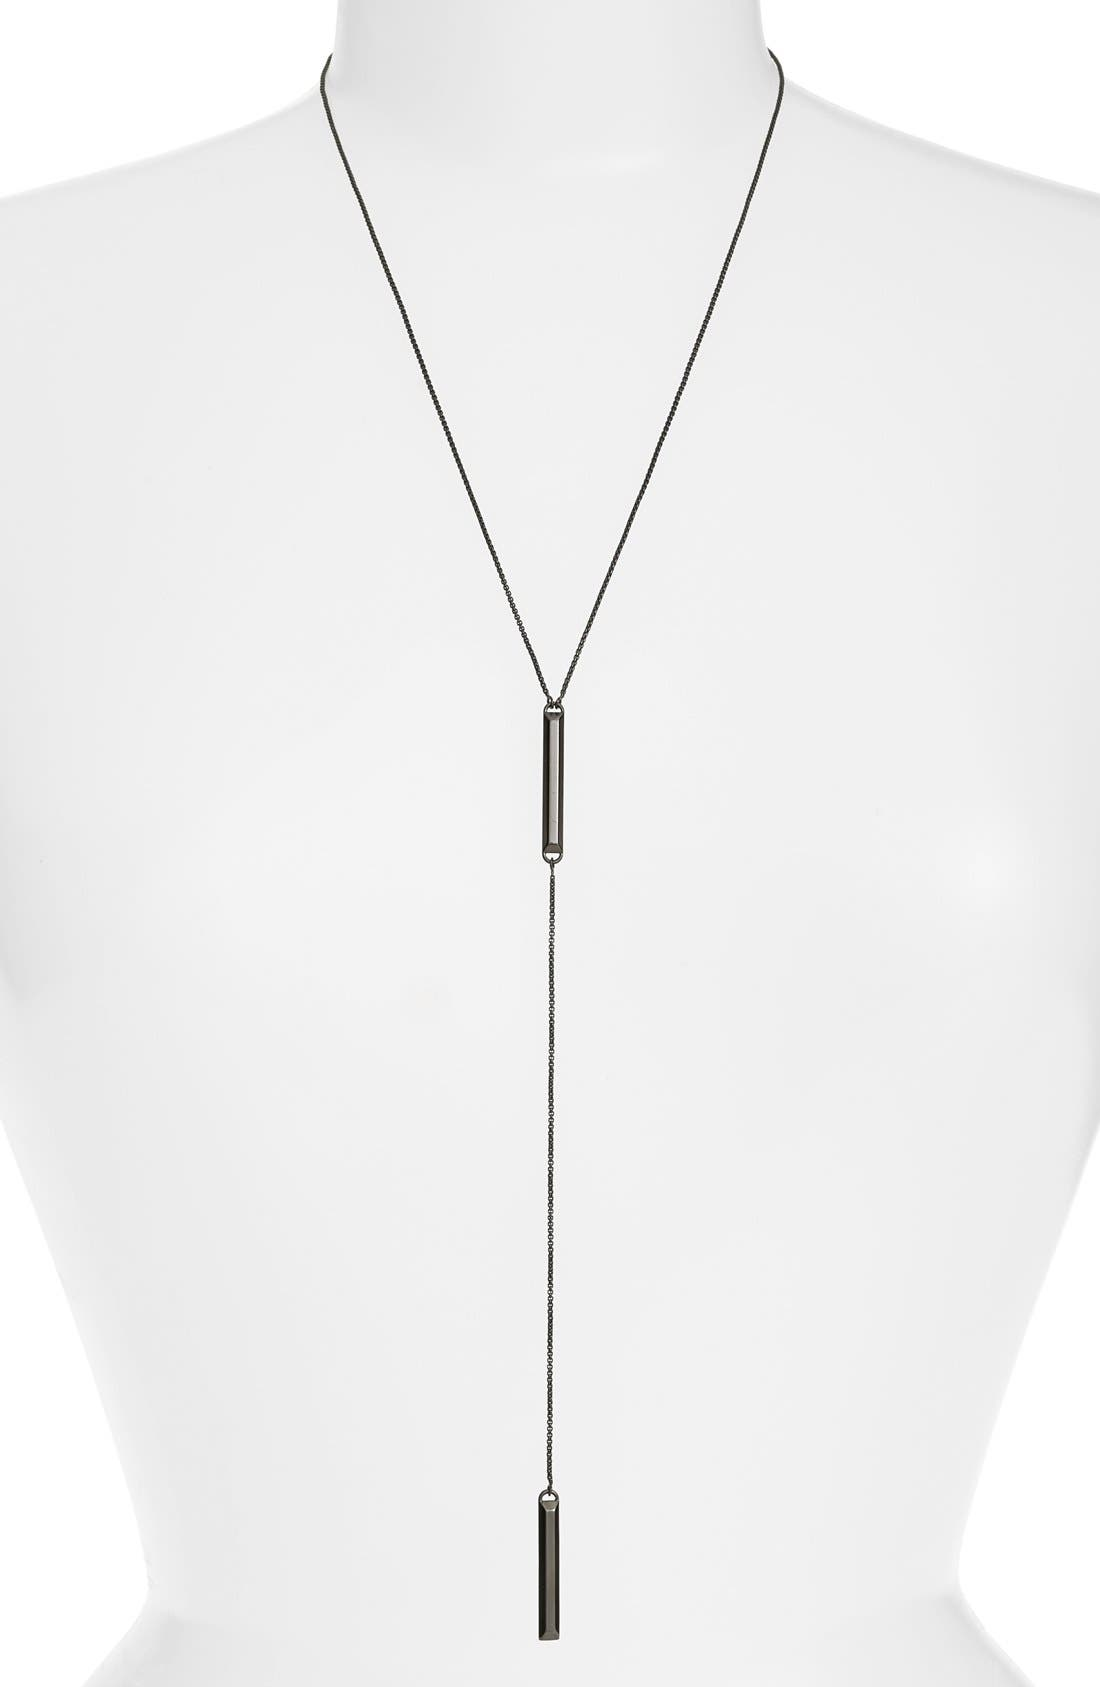 Main Image - Kendra Scott 'Shelton' Y-Necklace